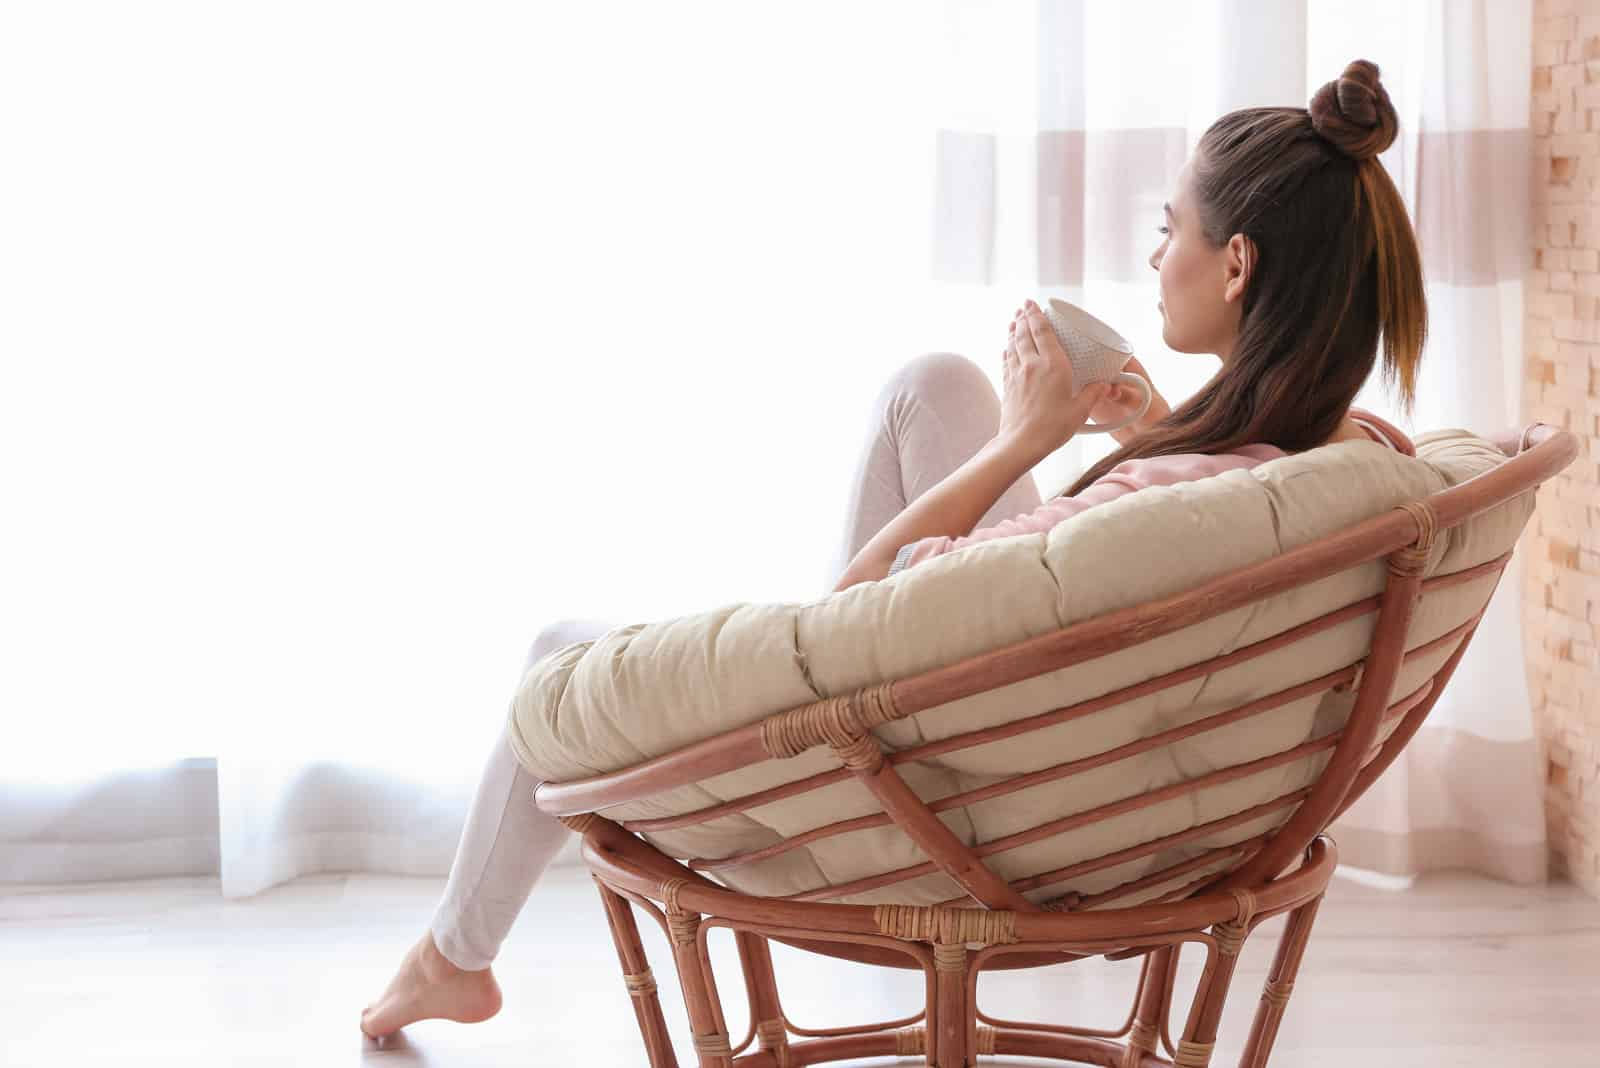 a woman with long black hair is sitting on a chair drinking coffee and looking in front of her